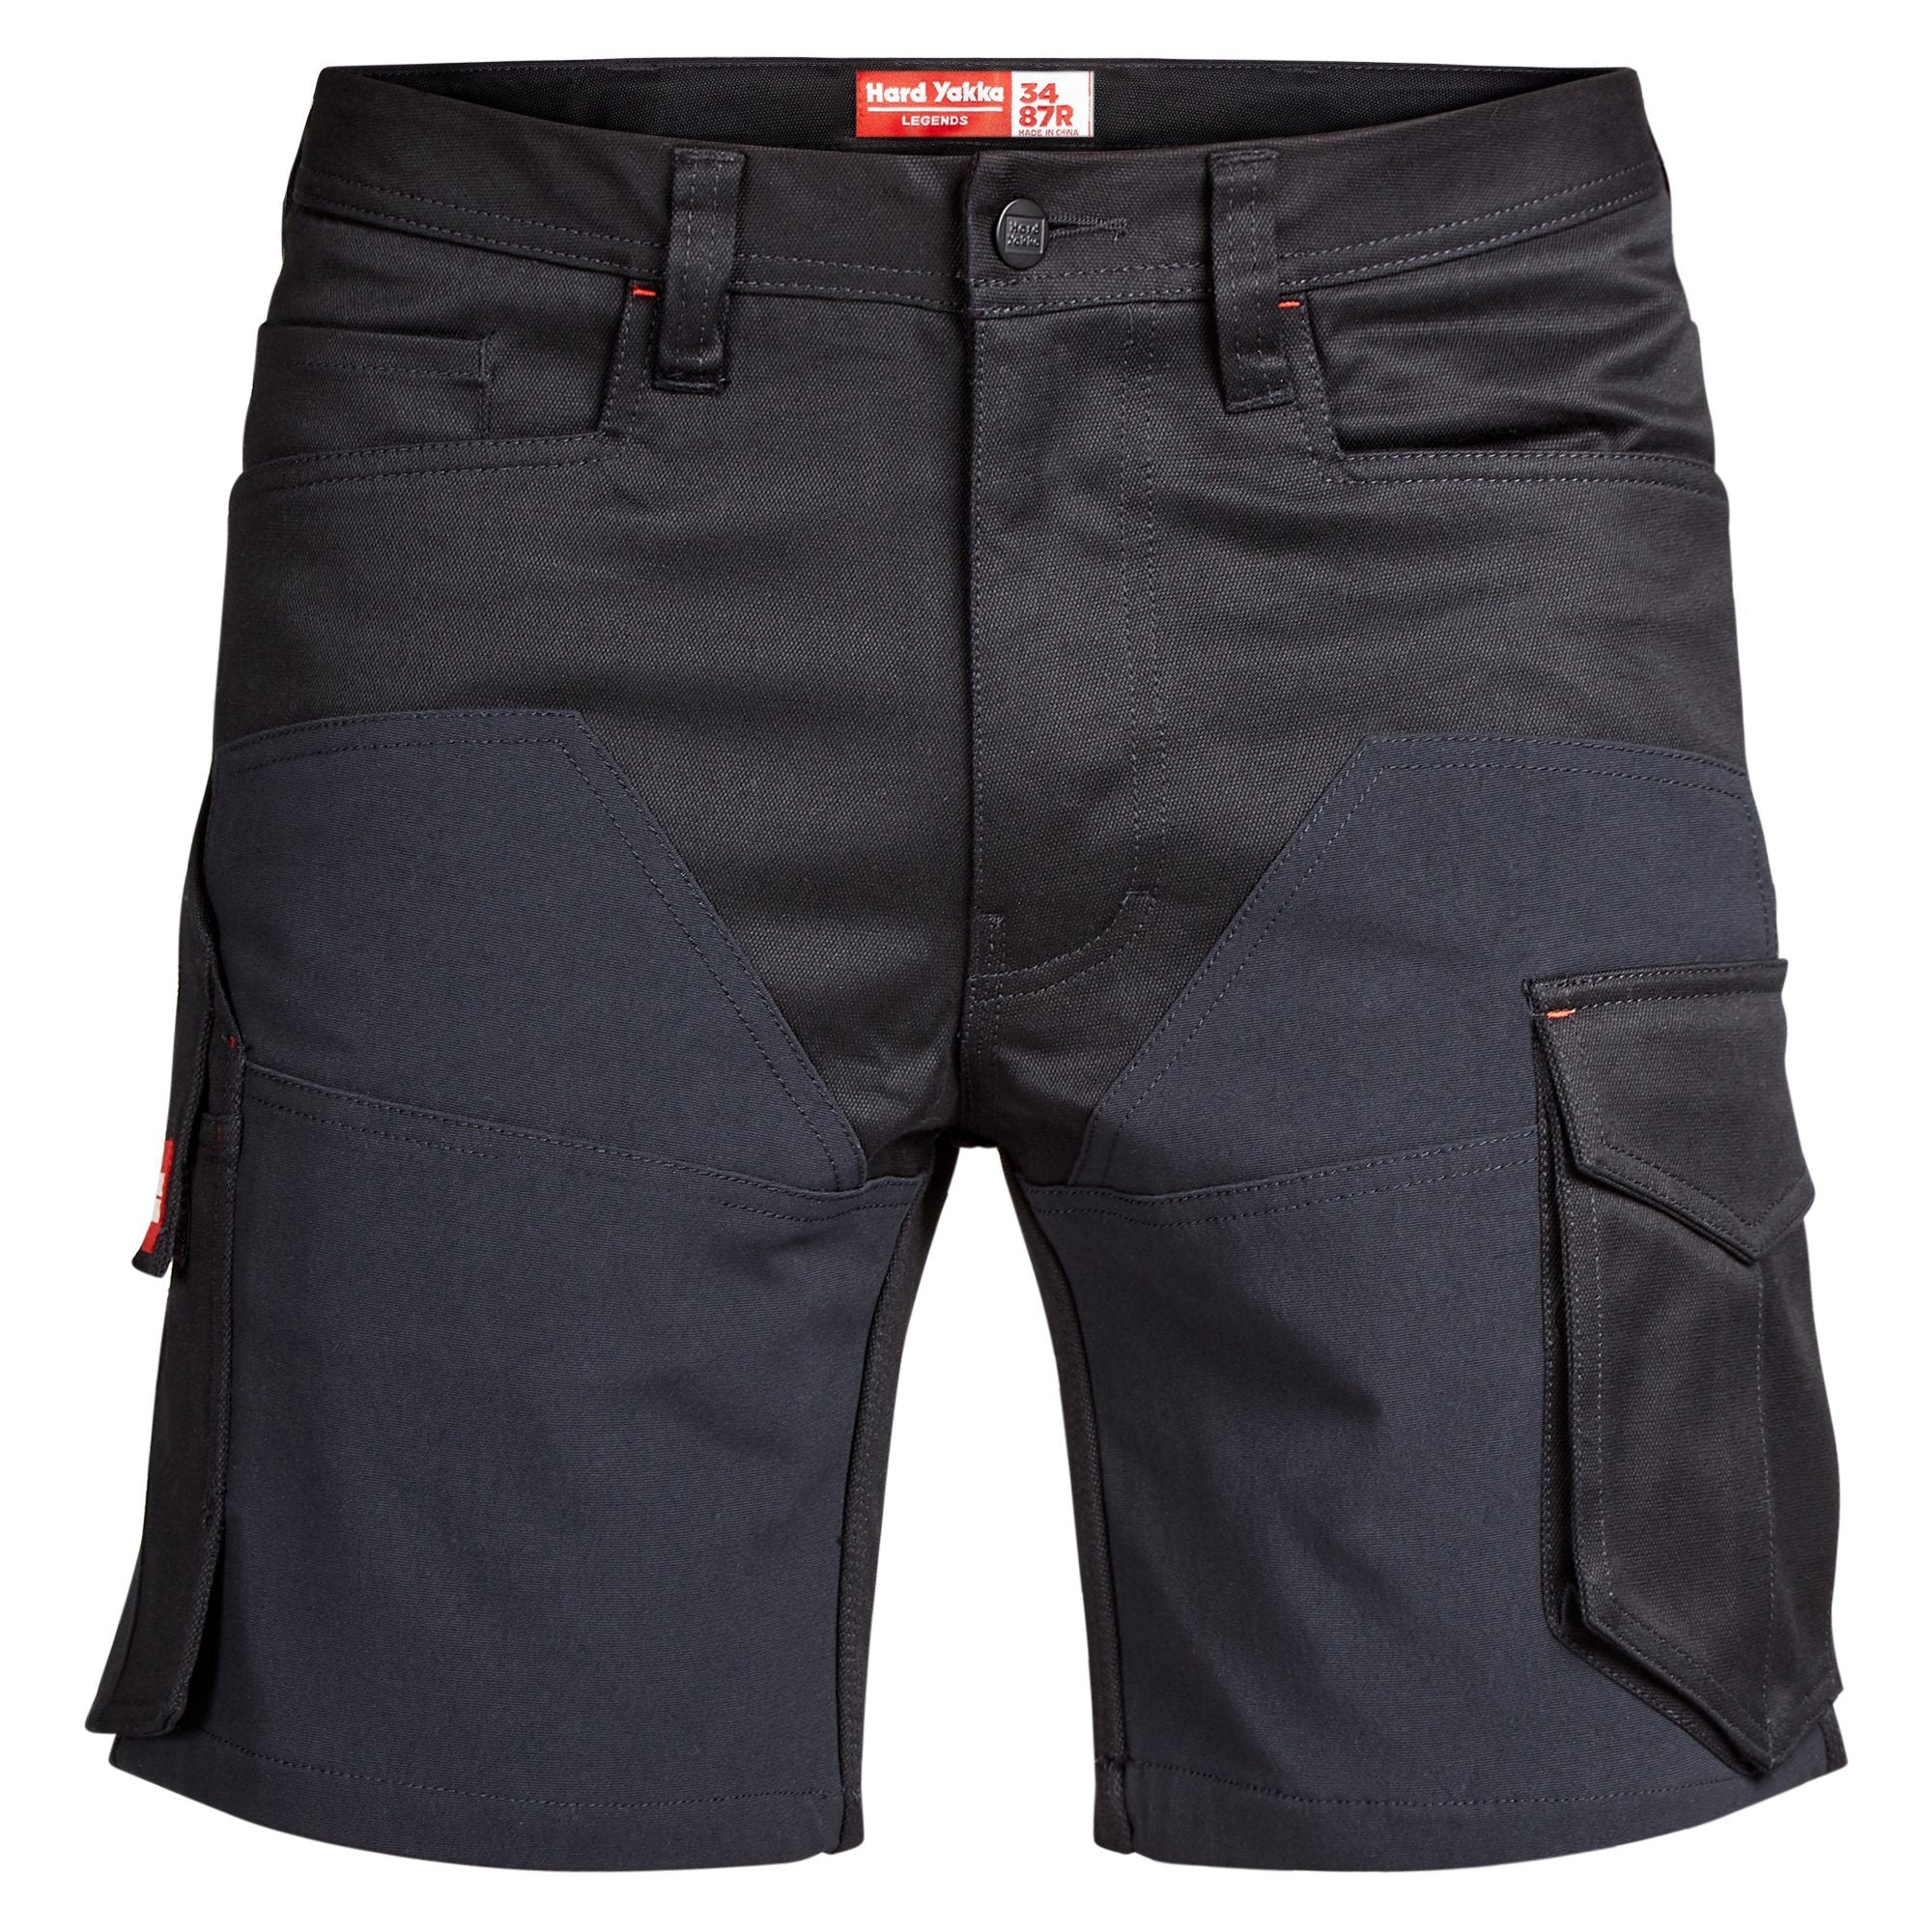 Hard Yakka Legends 3D Stretch Cargo Short - Black/Black Workwear Isbister & Co